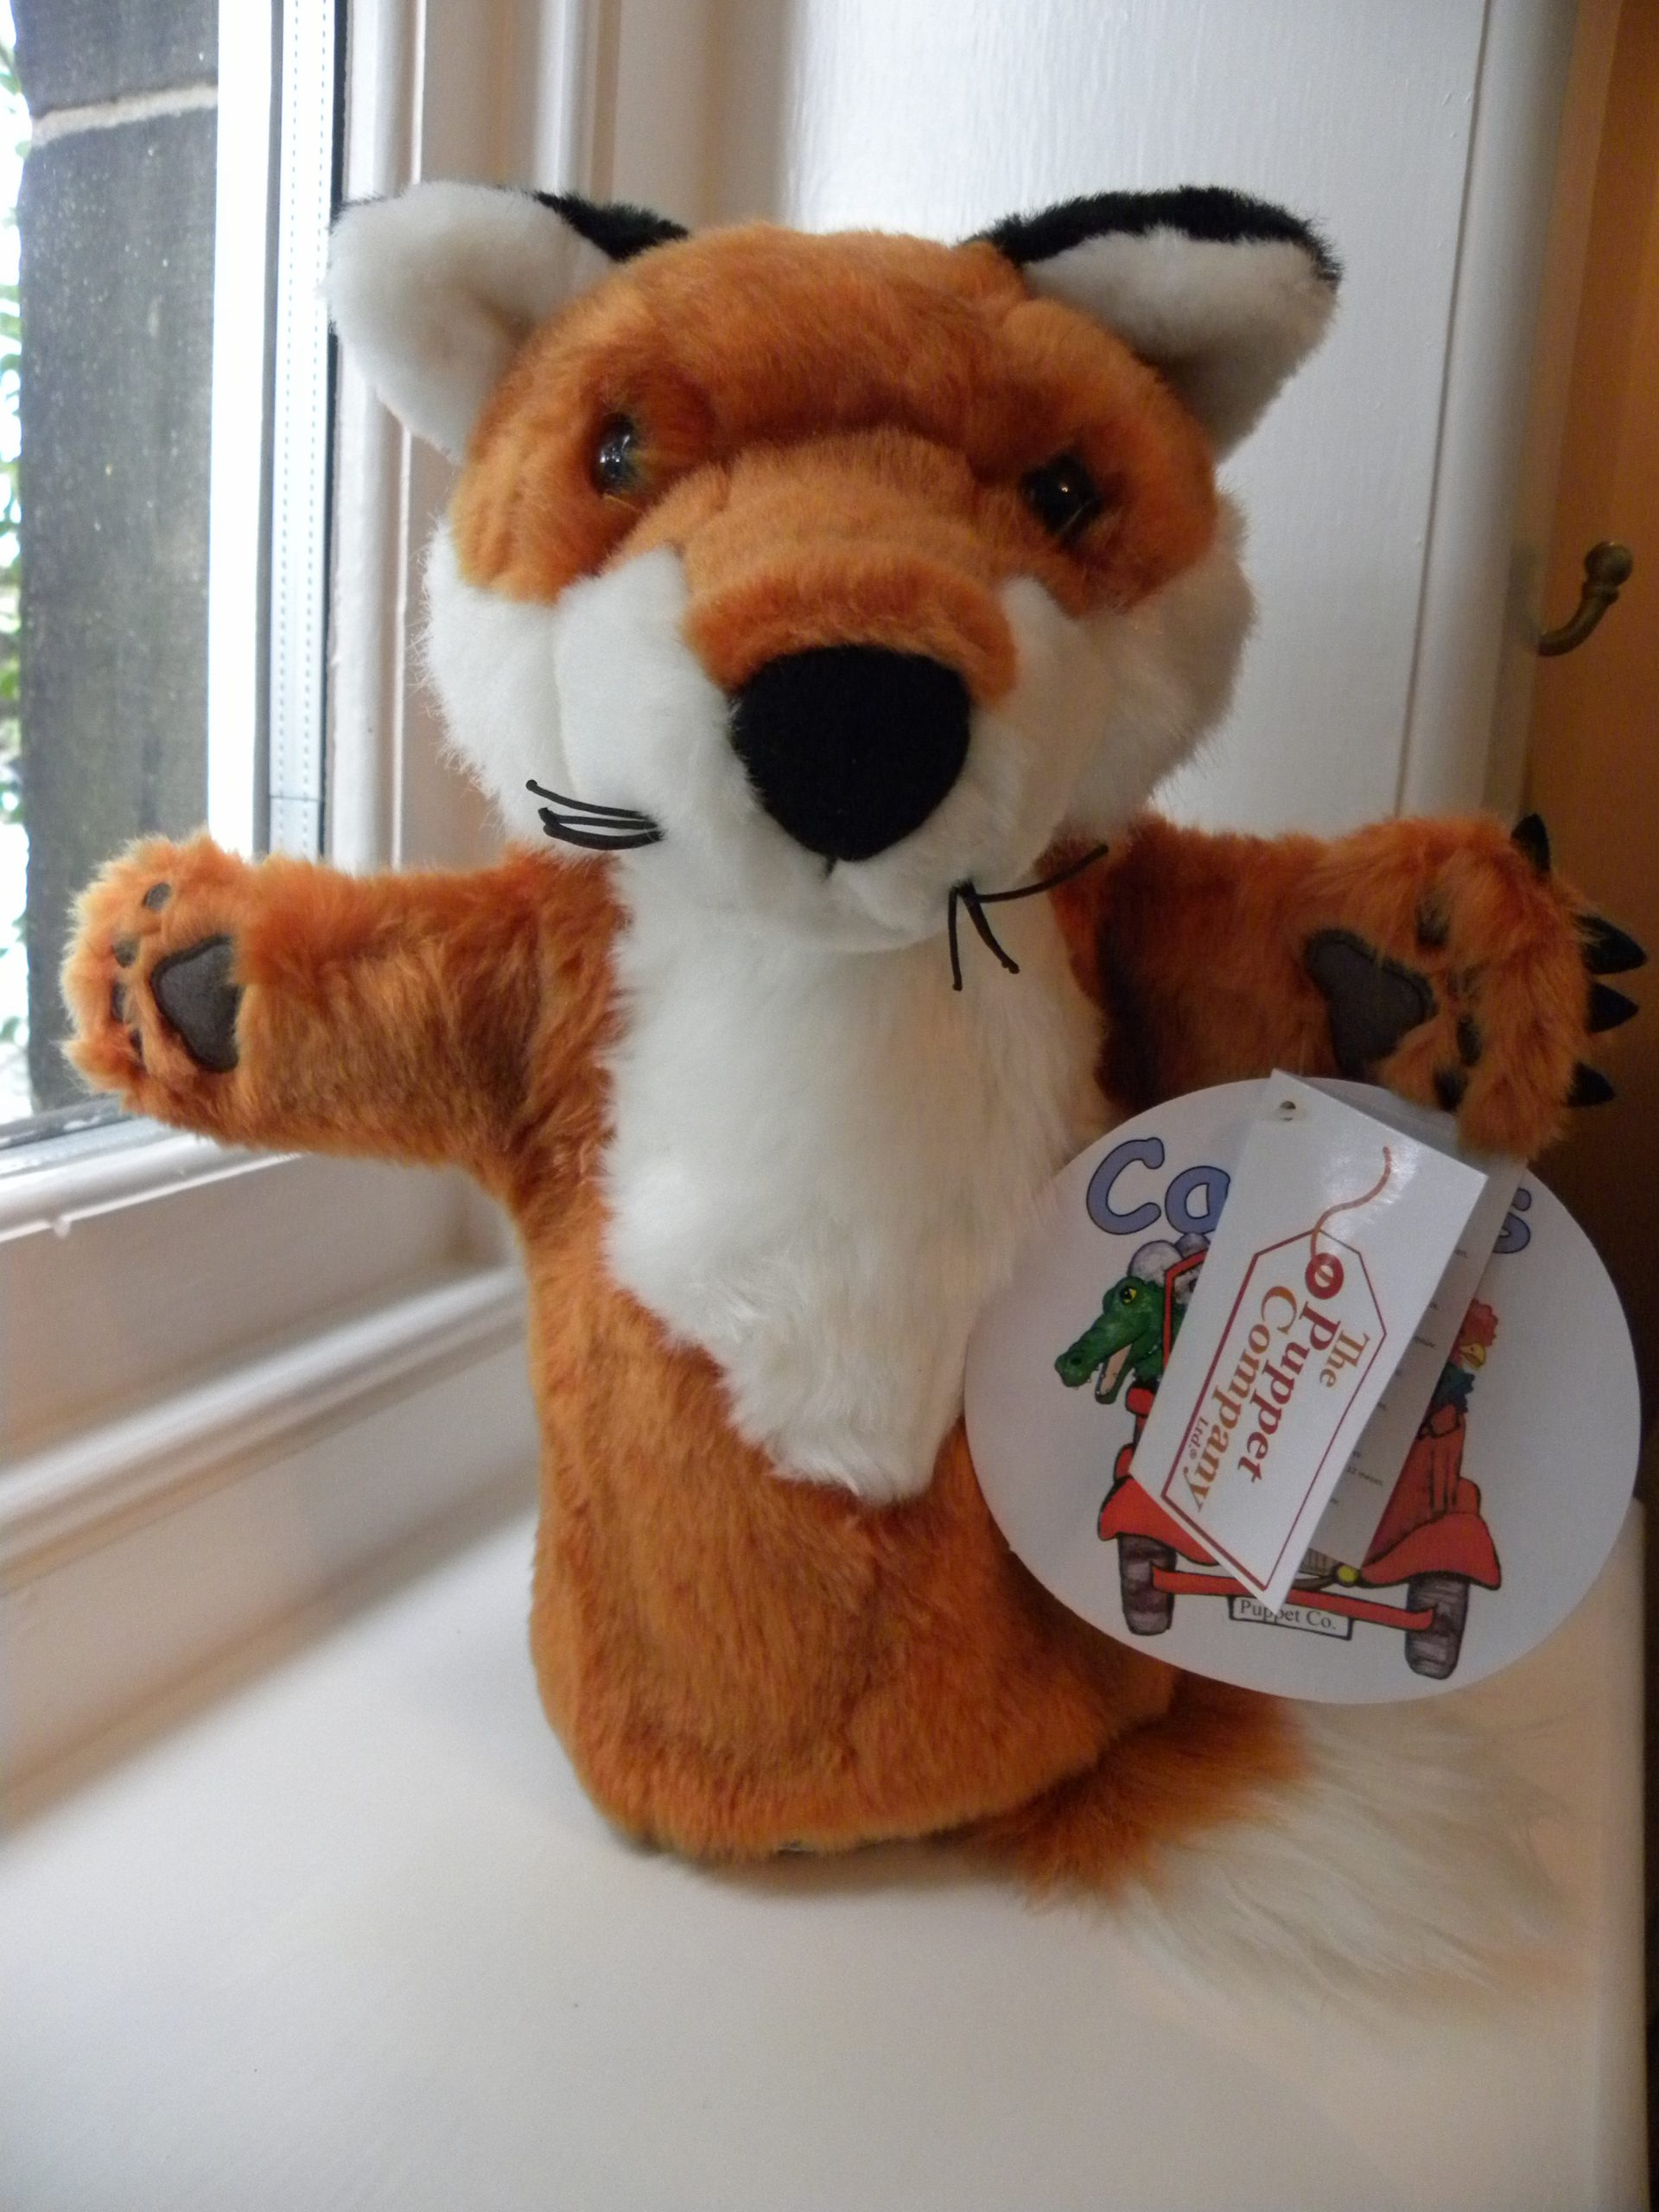 The Puppet Company - Red Fox Glove Puppet